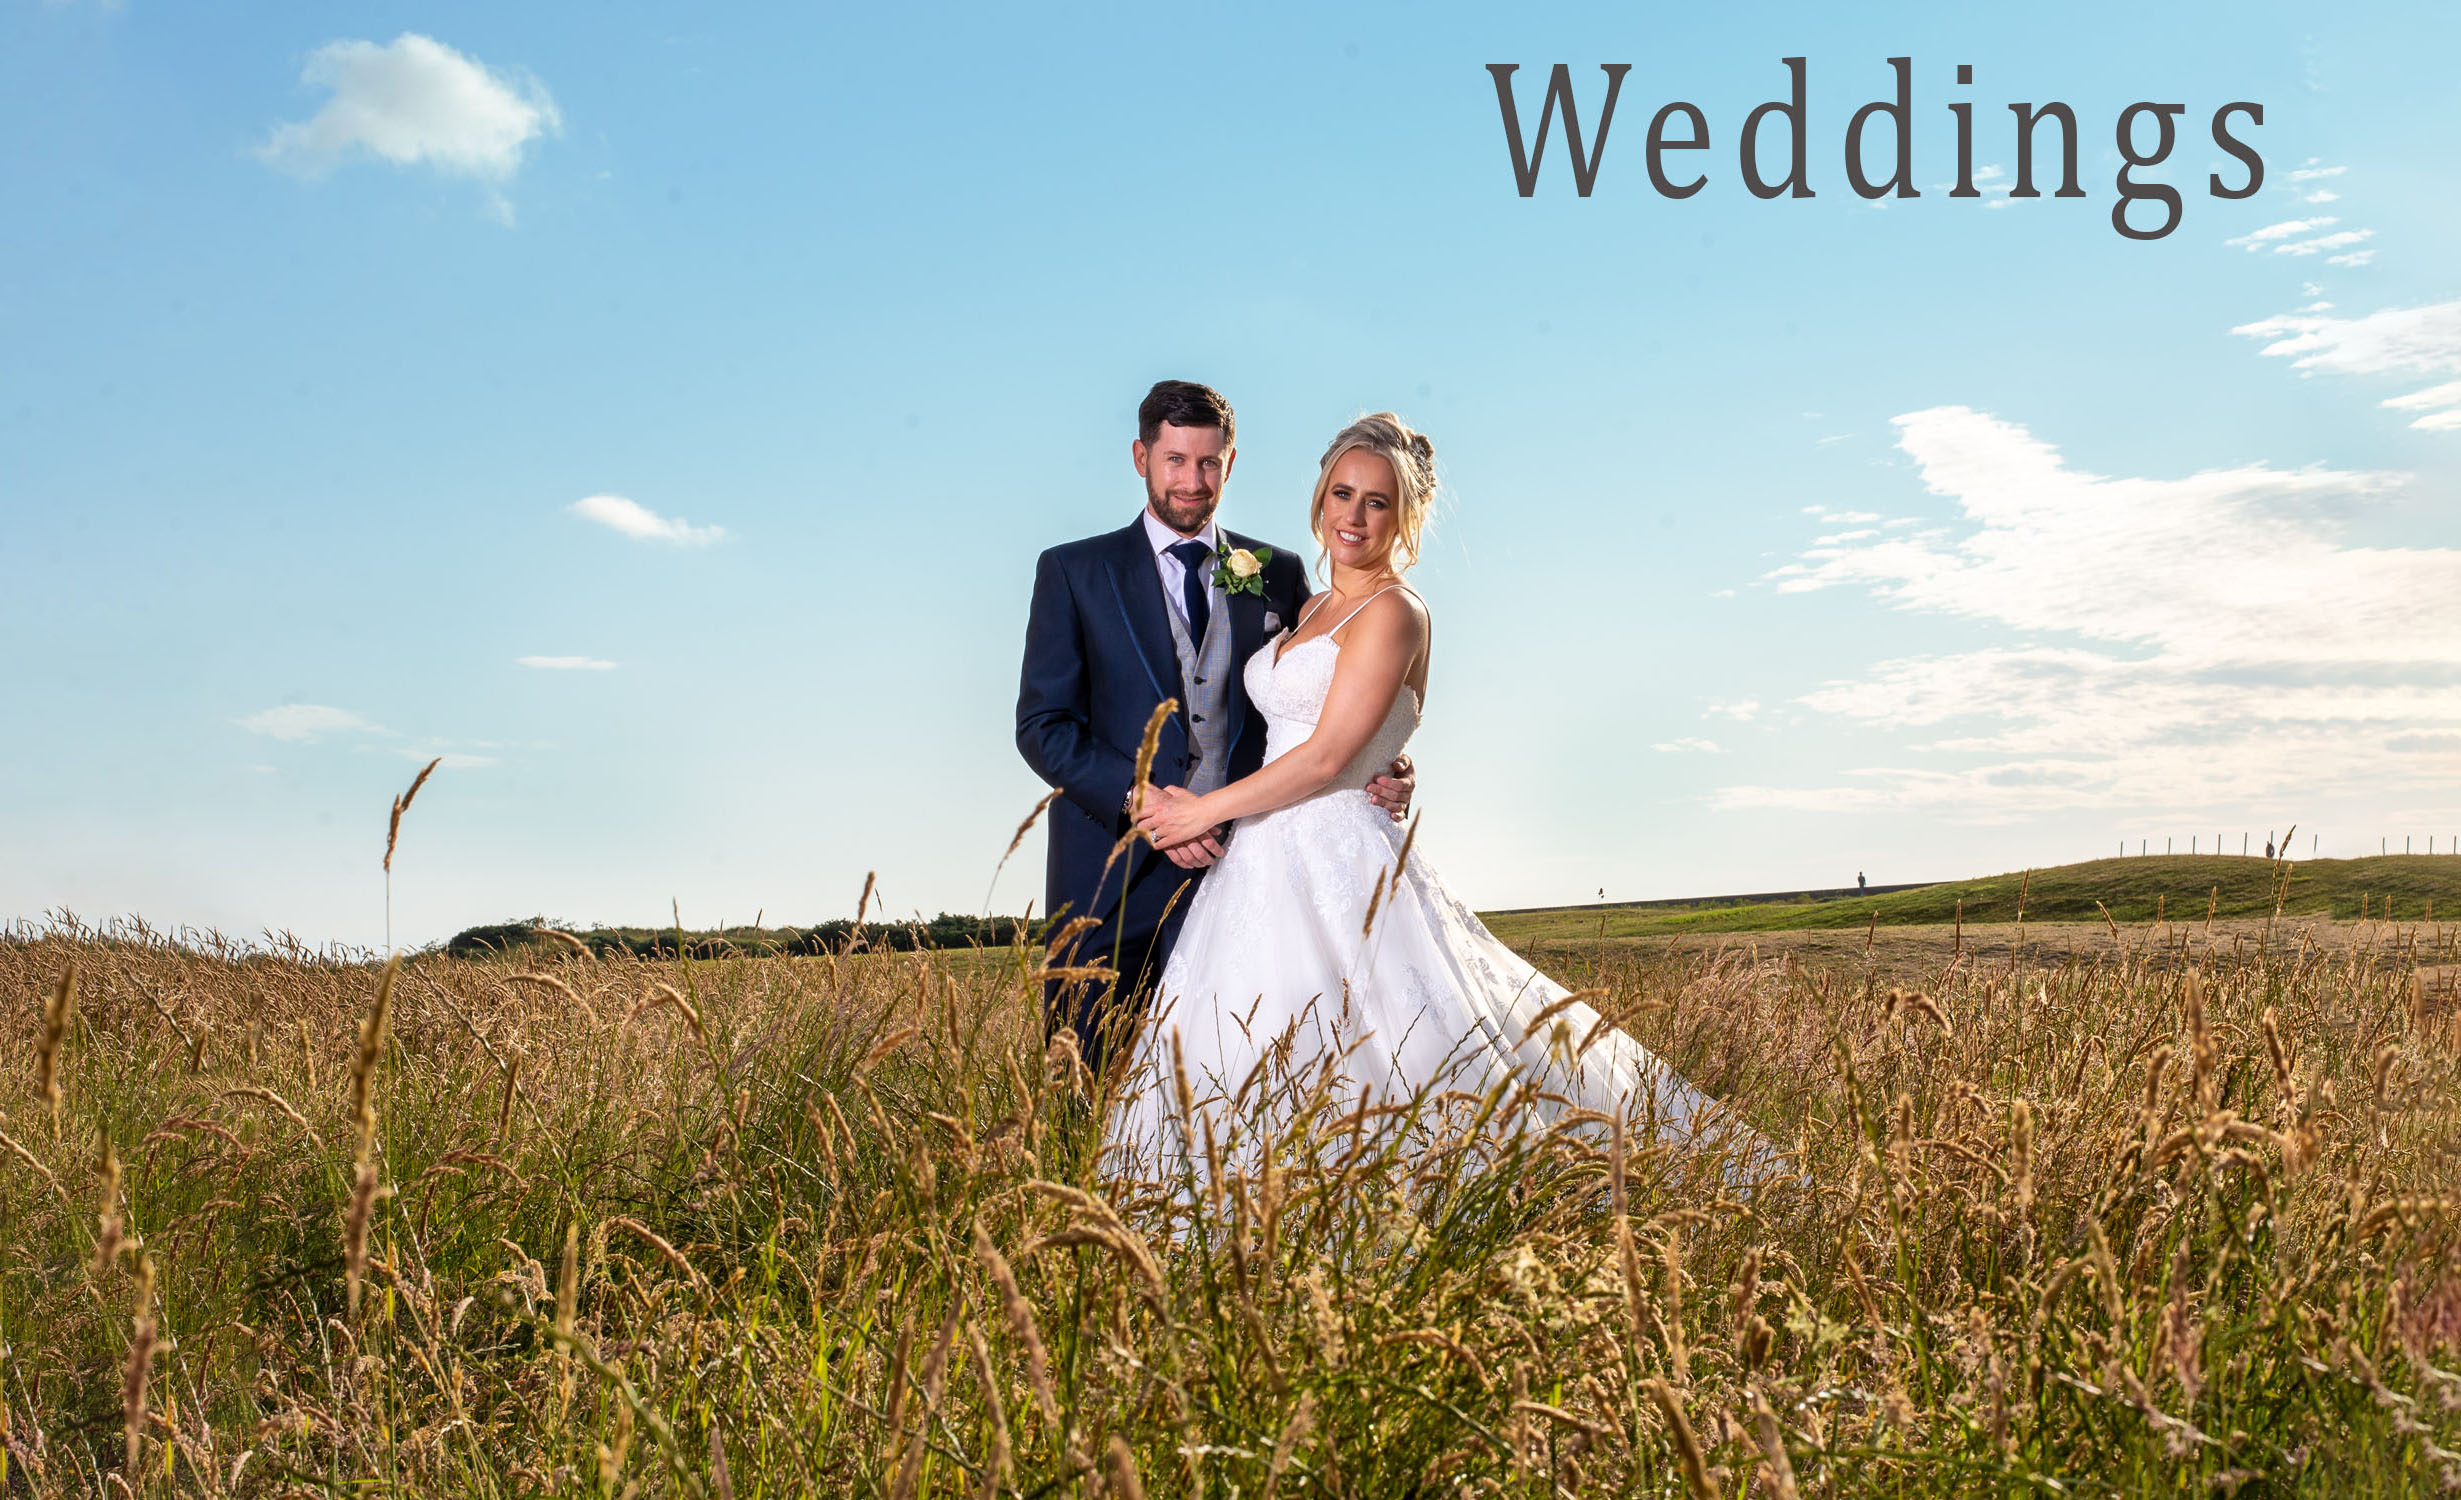 NS photography - weddings